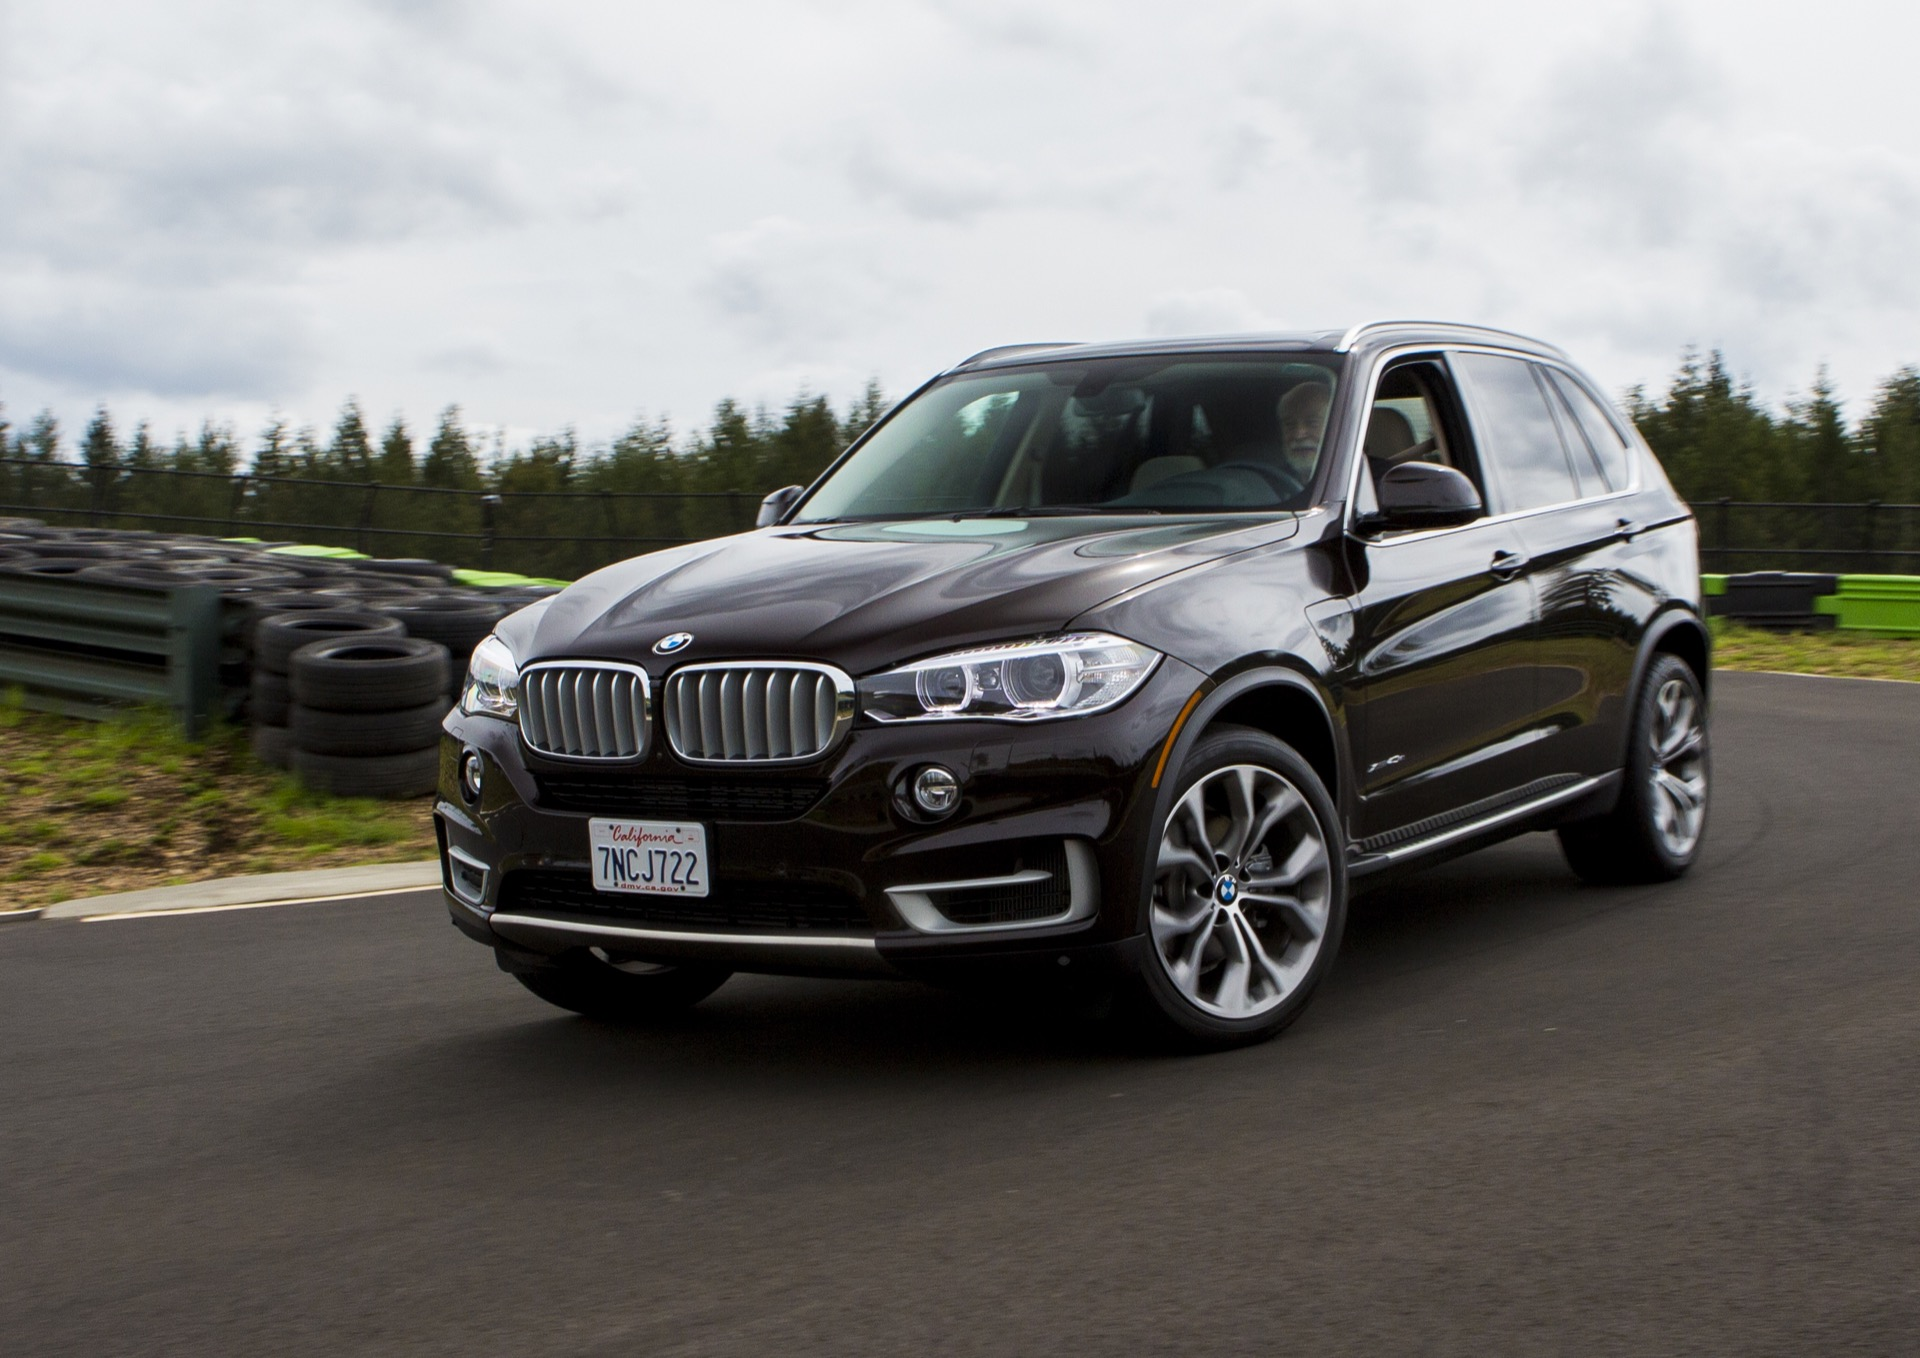 2016 bmw x5 xdrive40e first drive review. Black Bedroom Furniture Sets. Home Design Ideas